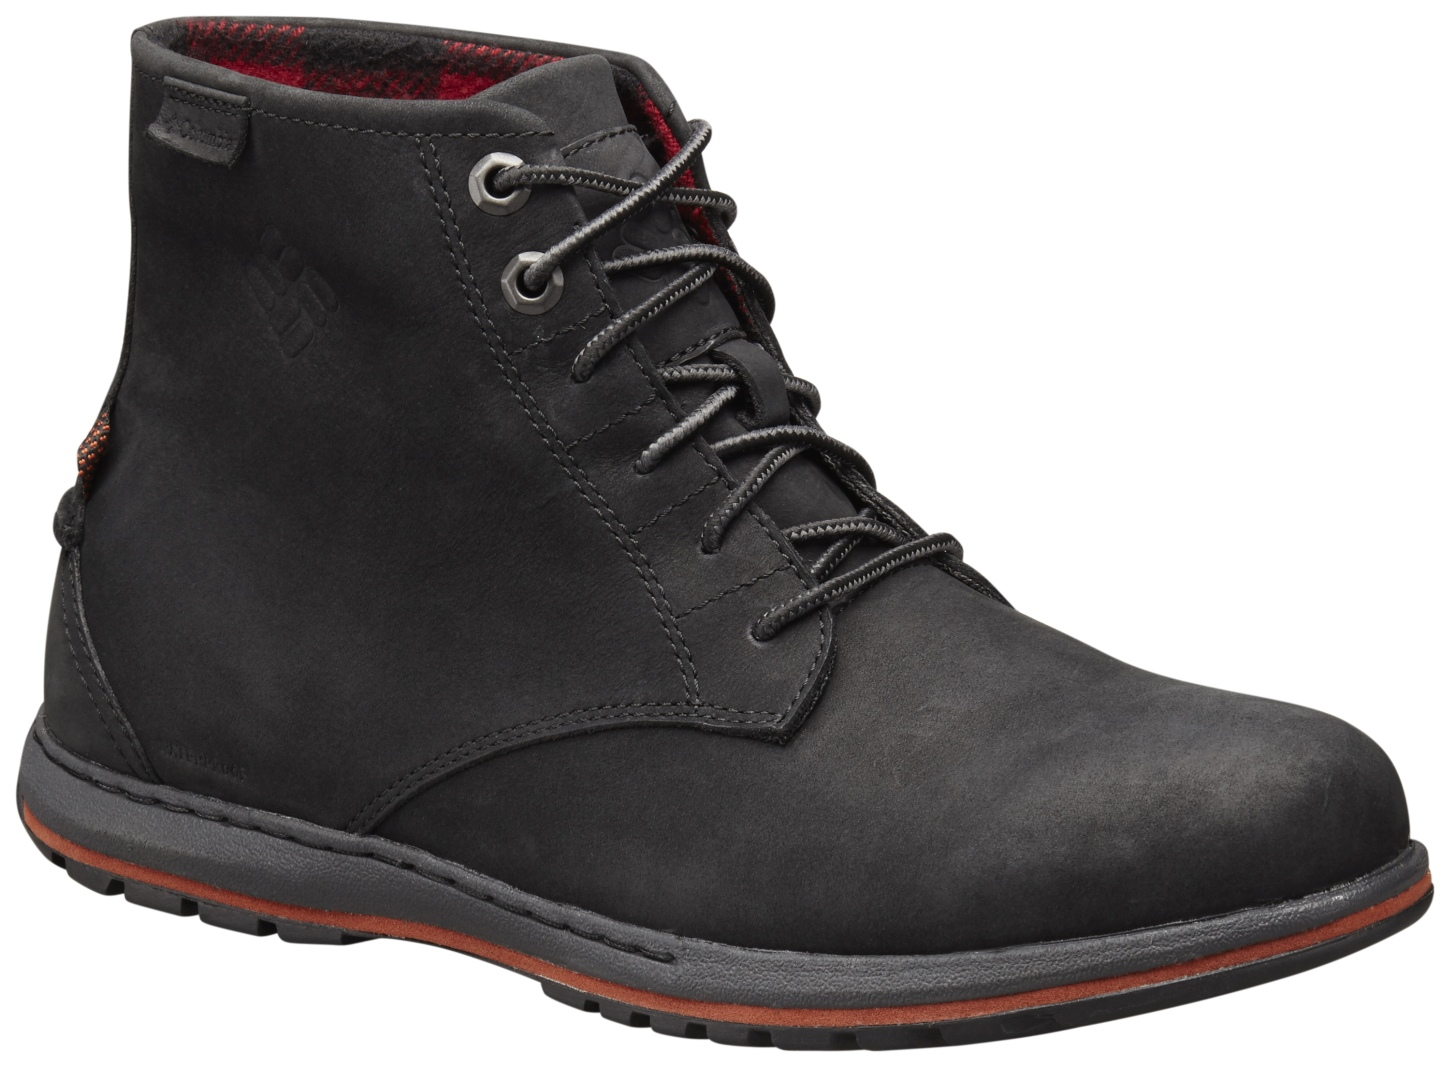 Columbia Men's Davenport Six Waterproof Boots Black-30